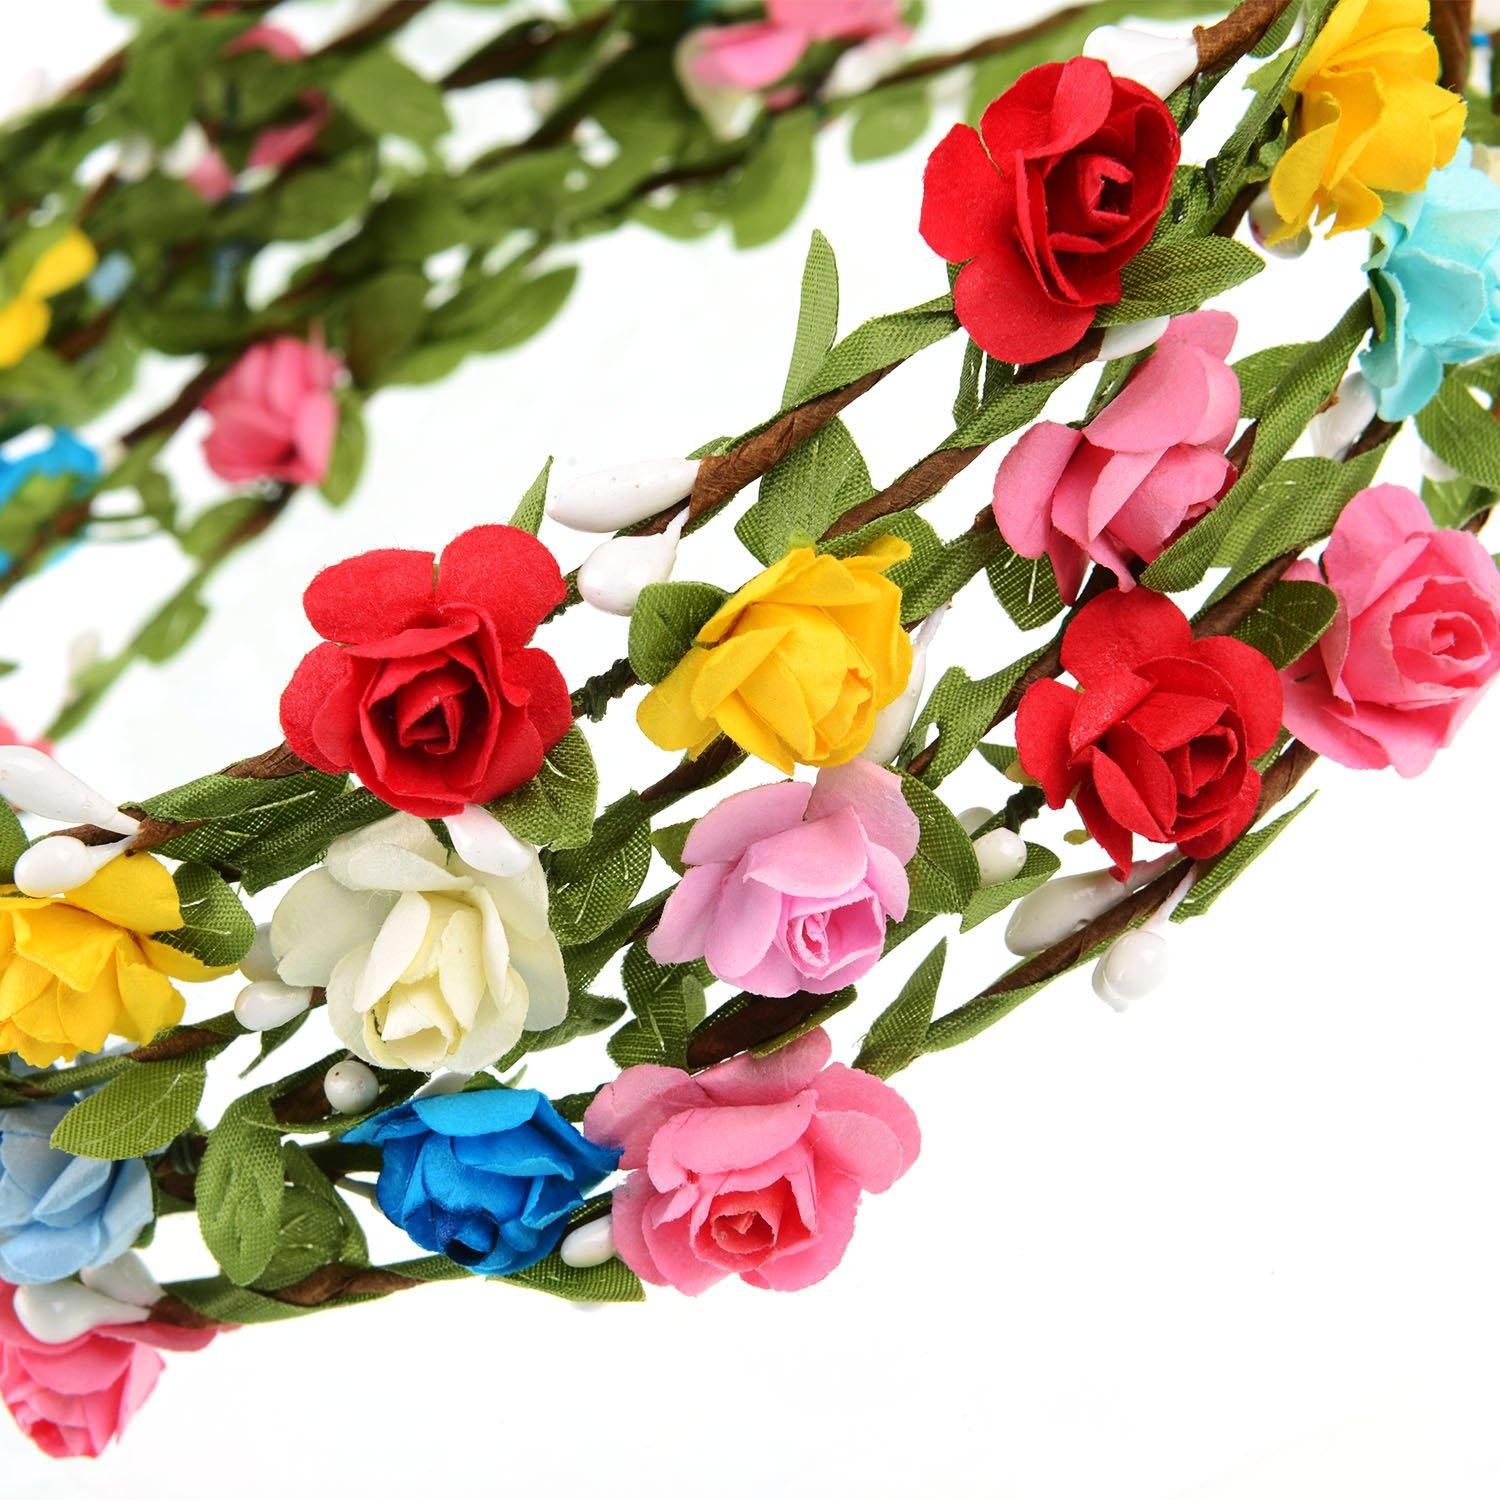 Amazon eboot 15 pieces assorted colored flower crown wreath amazon eboot 15 pieces assorted colored flower crown wreath headband garland headbands for wedding festival party vacation photography props beauty izmirmasajfo